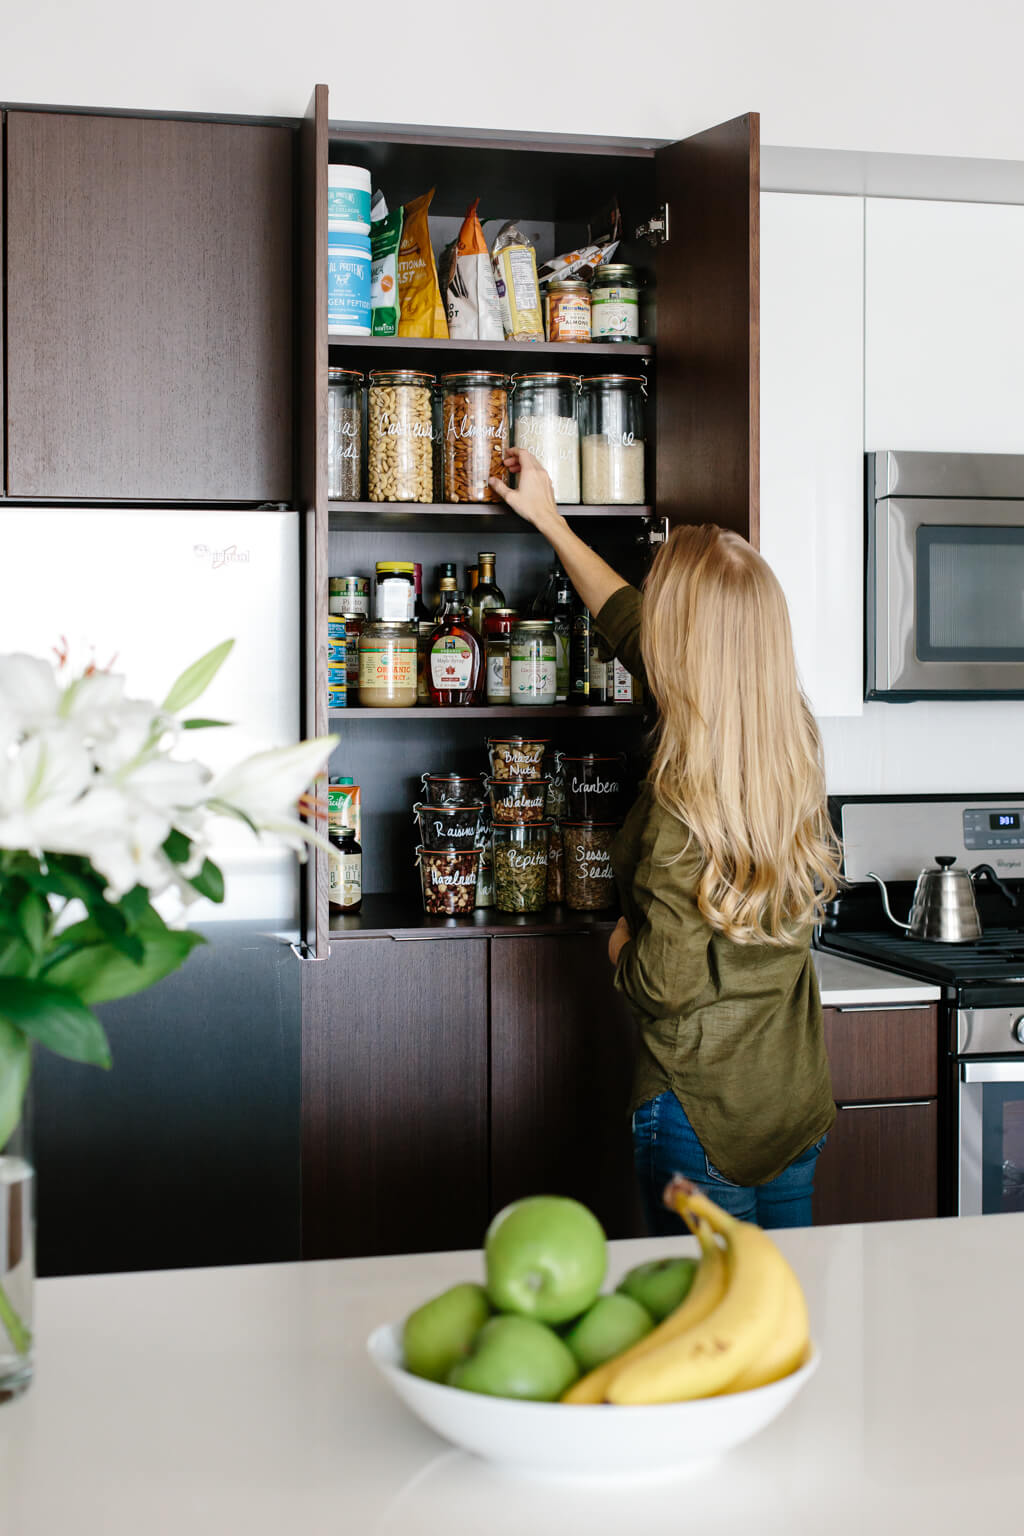 Pantry organization ideas - I've got several tips for creating a healthy pantry and moving all your storage containers to glass jars.